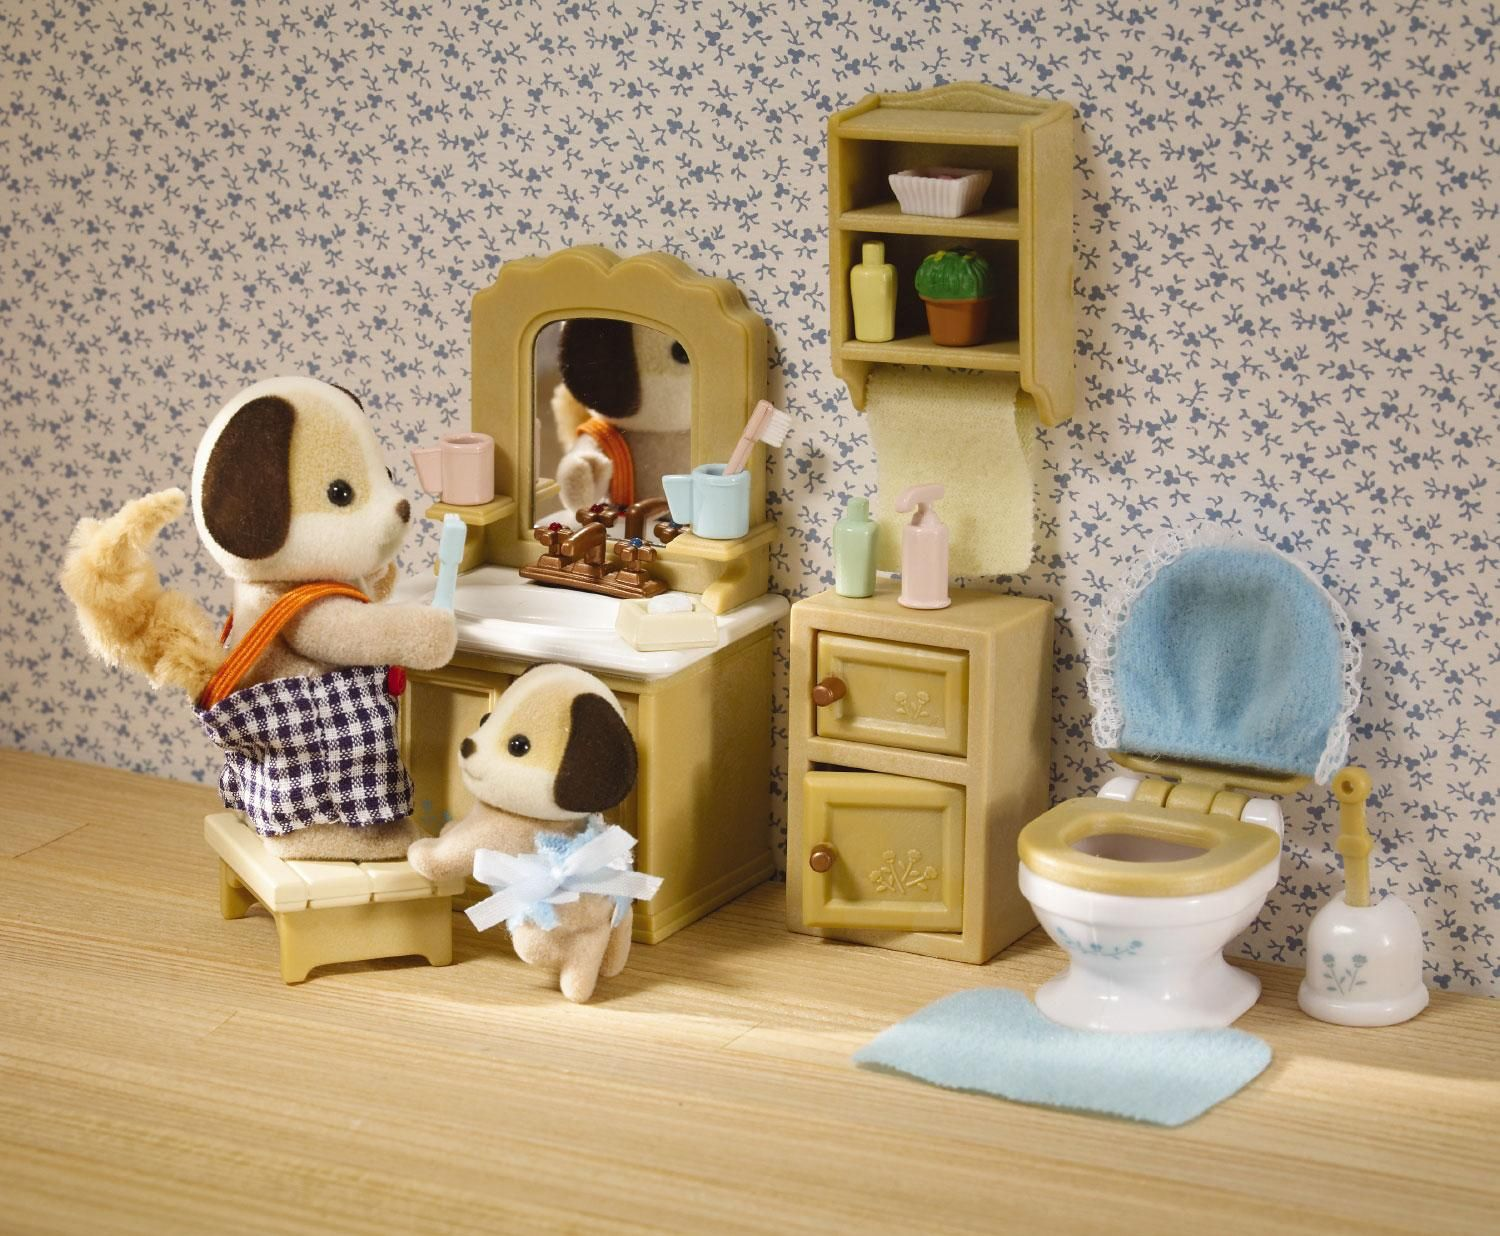 17 Best images about Calico Critters on Pinterest   Baby pool  Hopscotch  and Chihuahua dogs. 17 Best images about Calico Critters on Pinterest   Baby pool